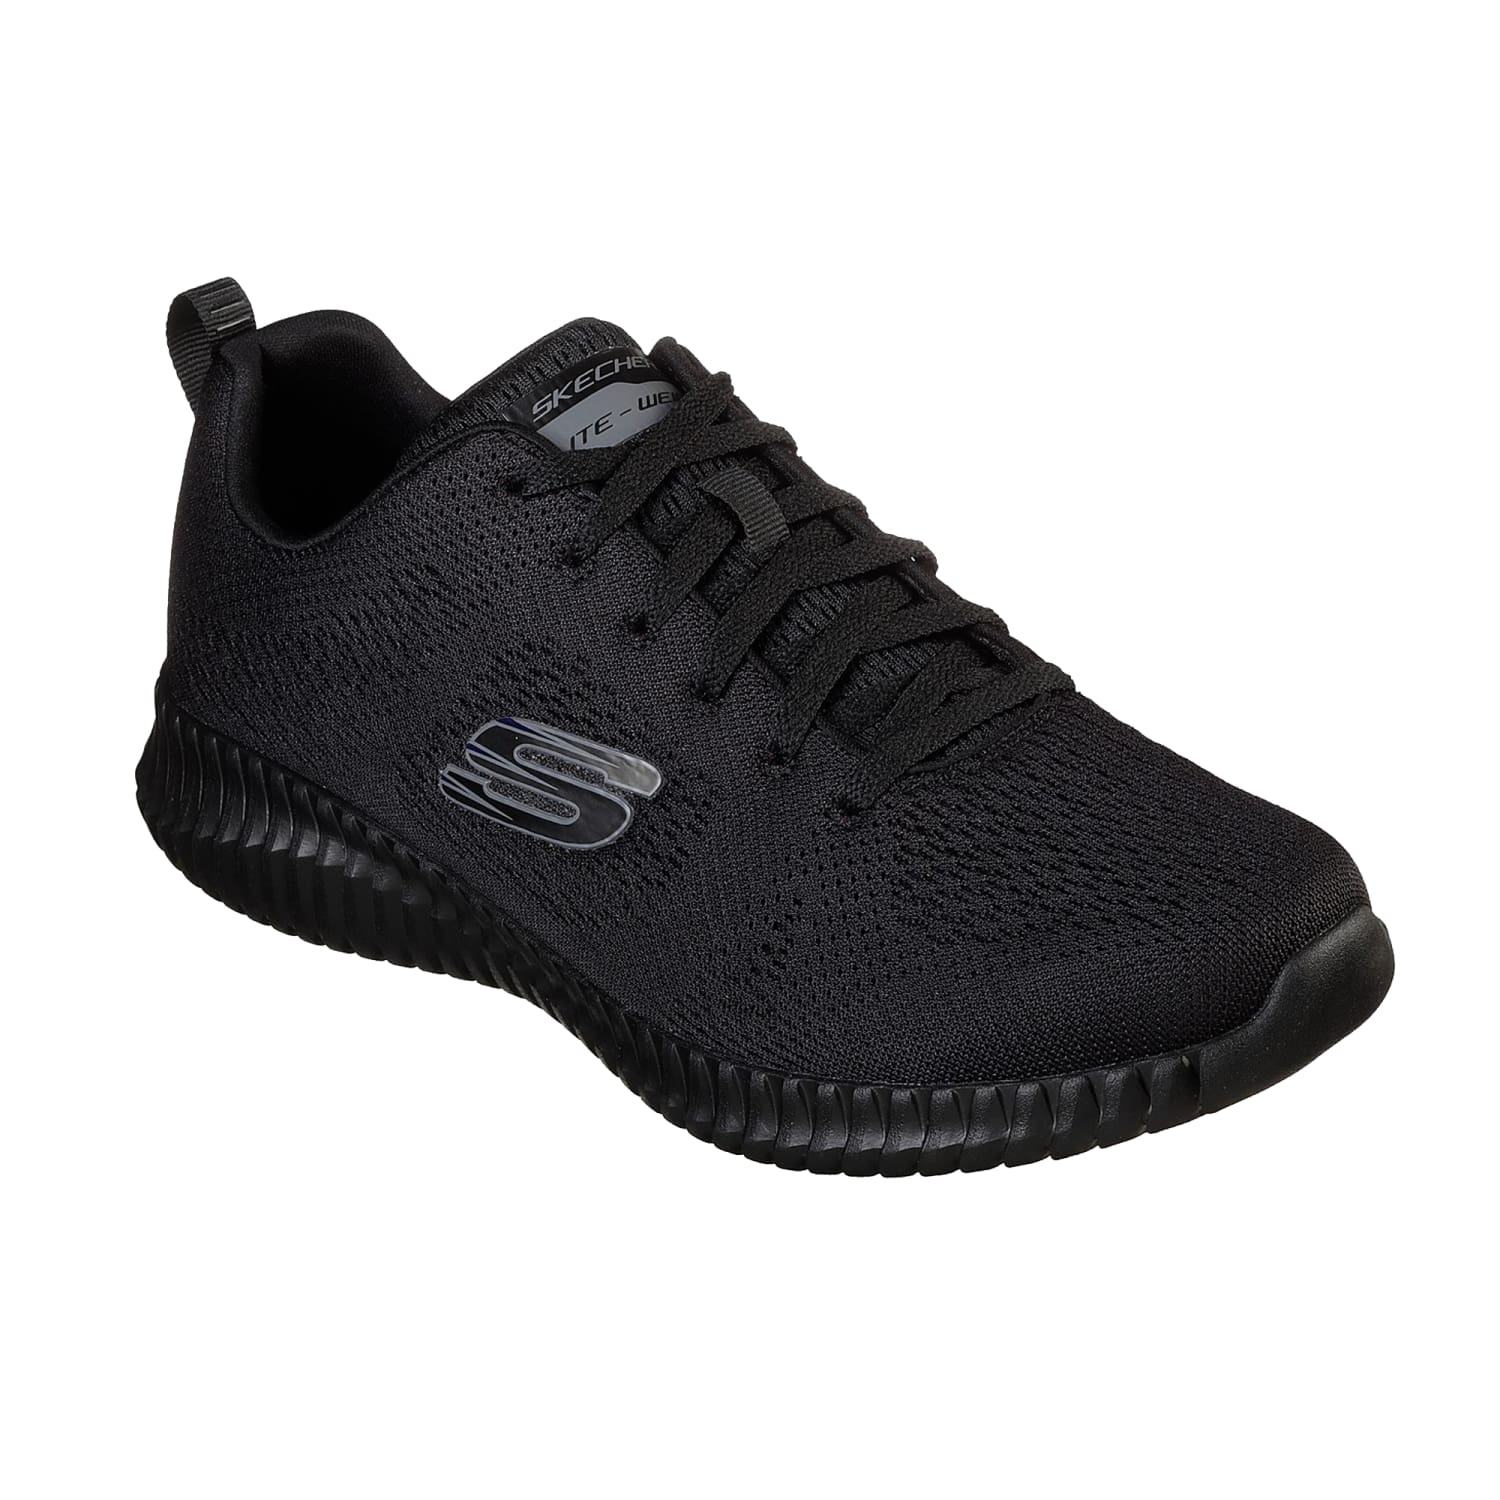 Skechers Trainers - 52871 - Elite Flex - Black 1